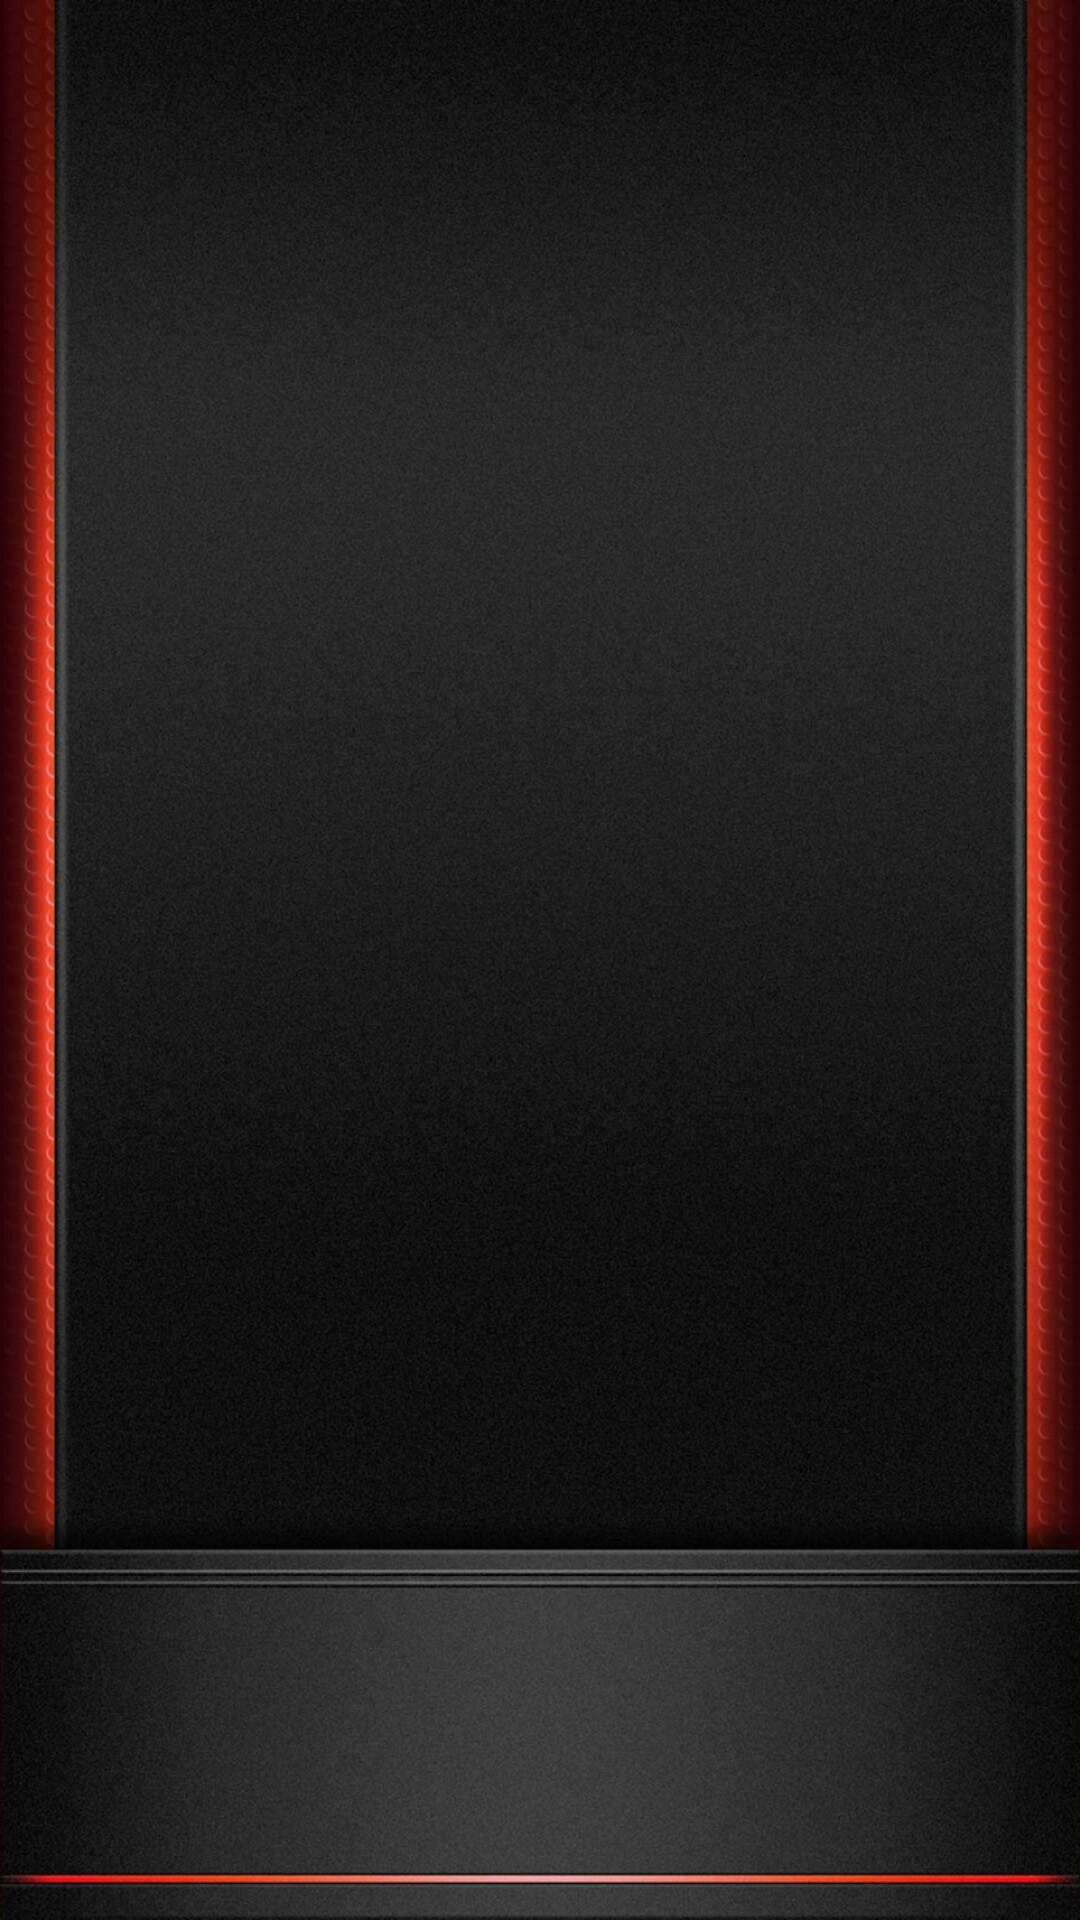 Black with Red Trim Wallpaper